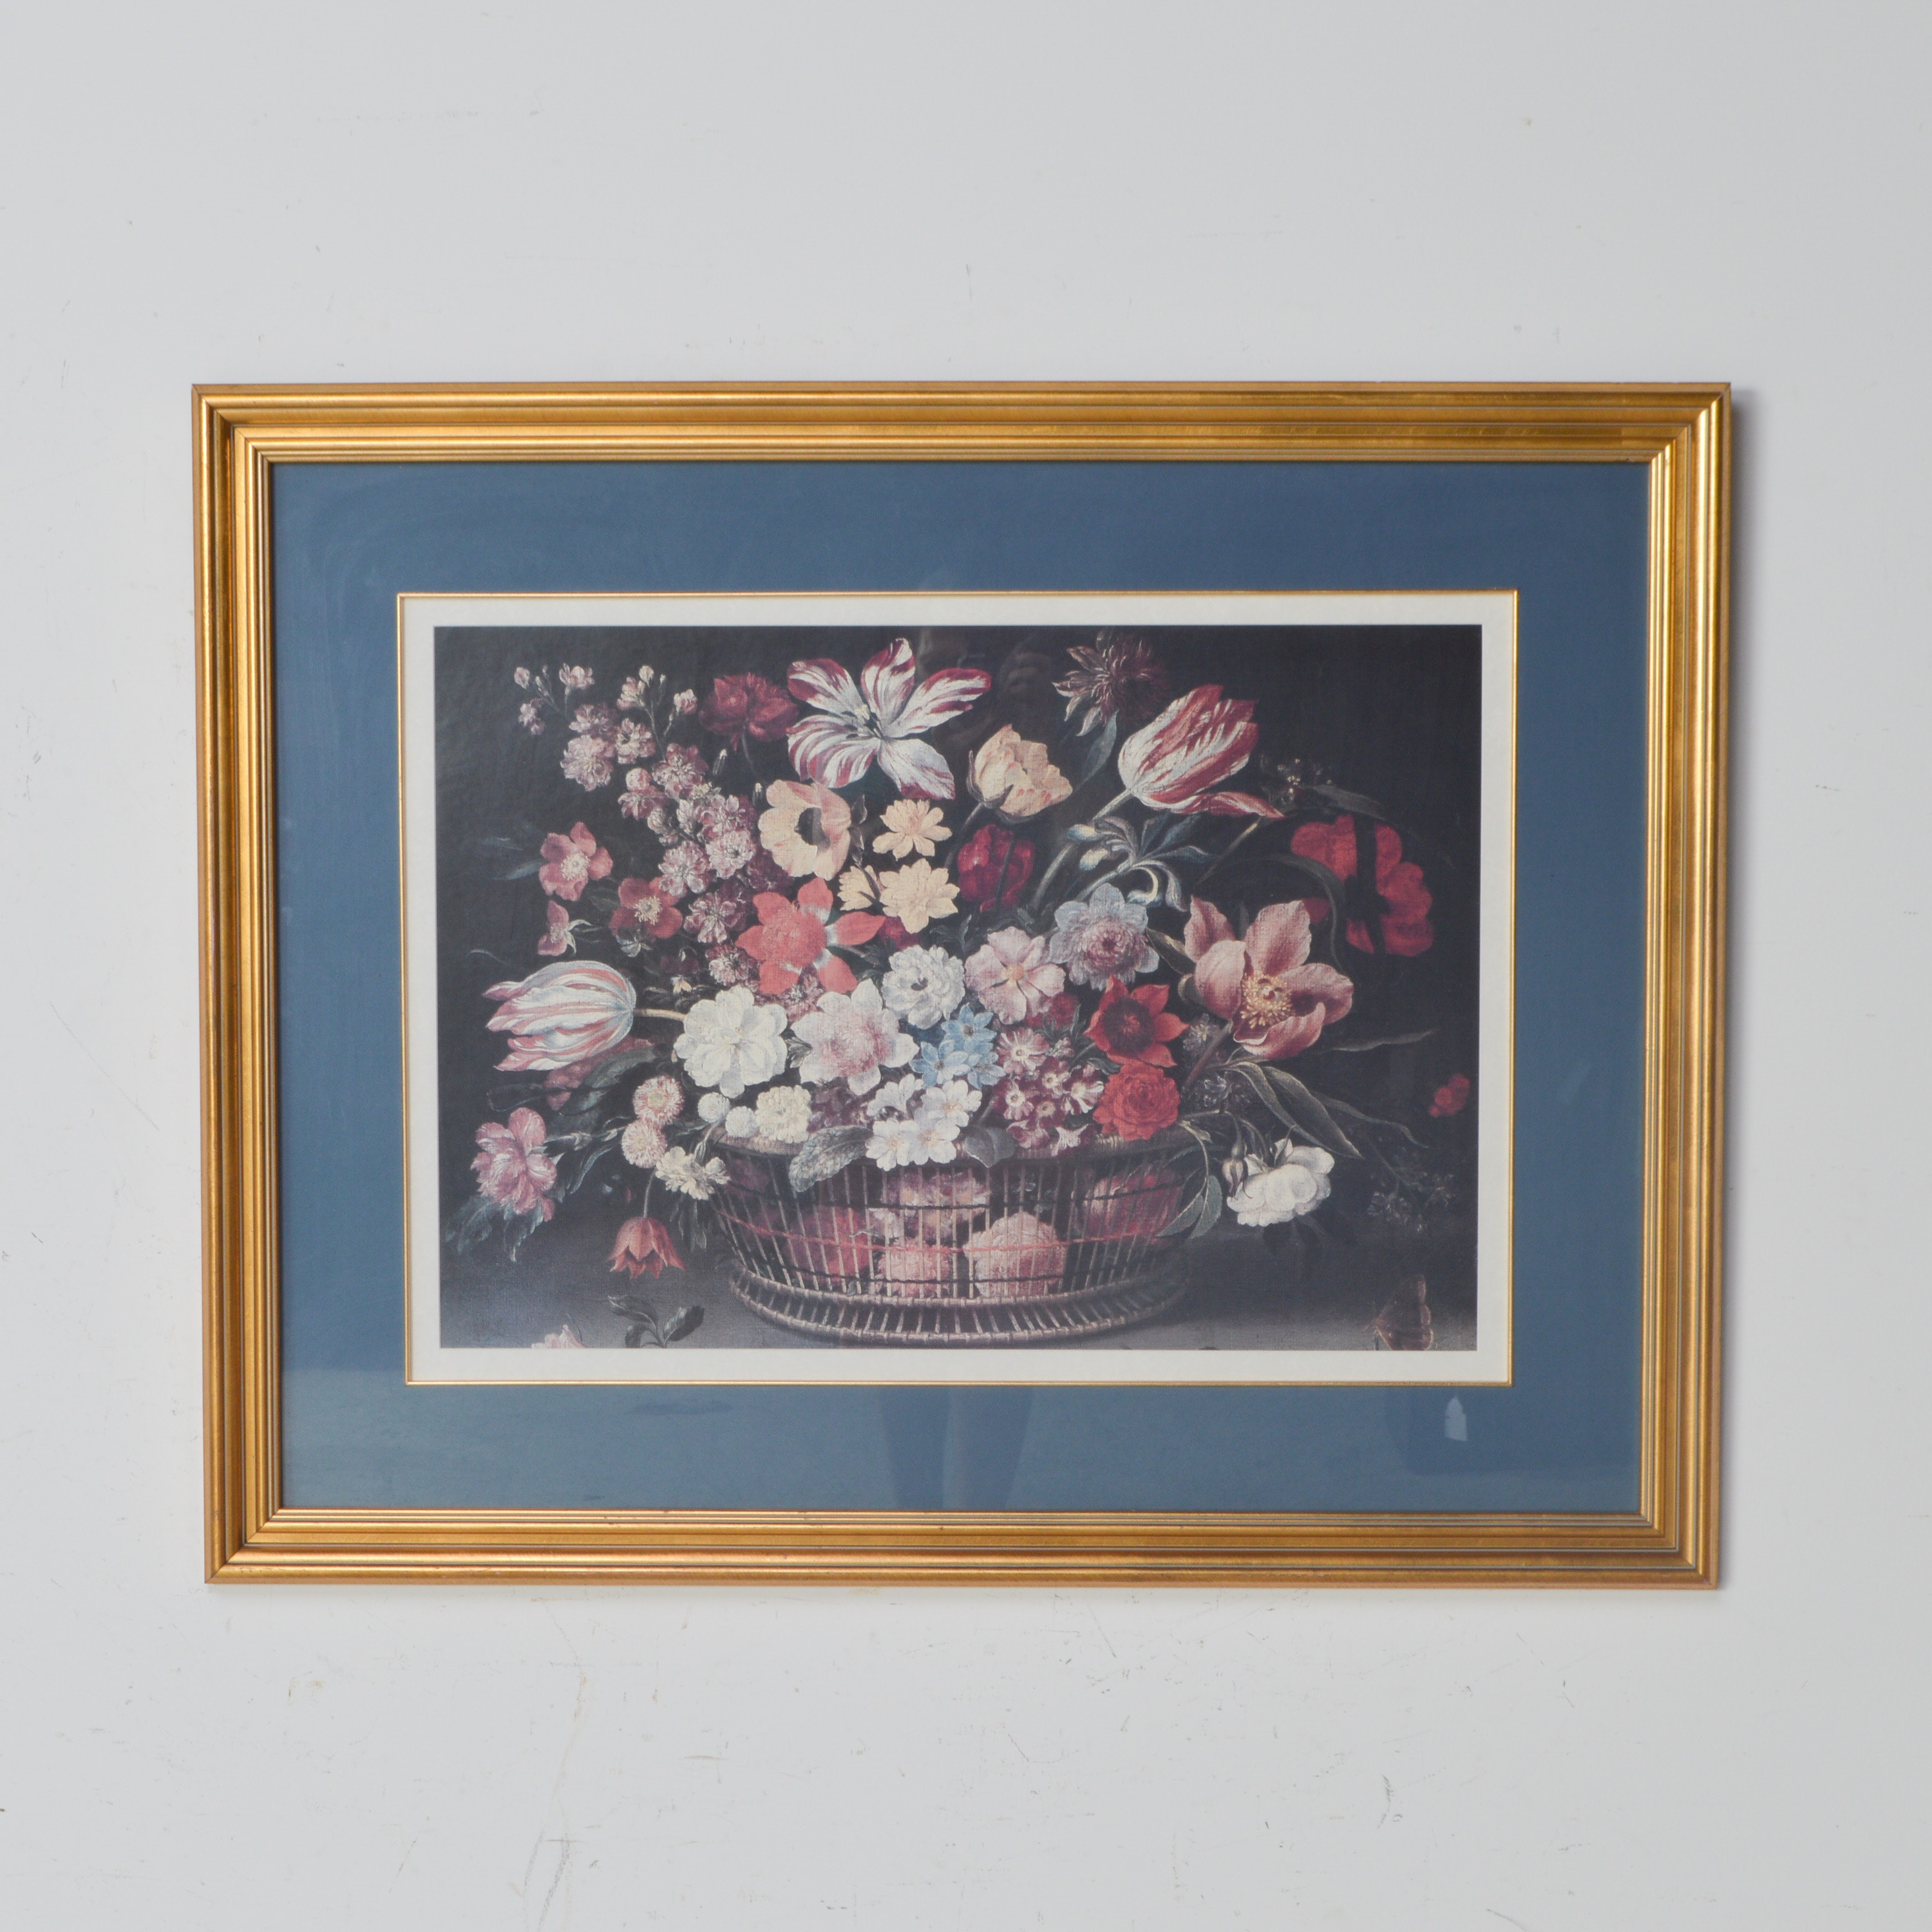 Framed Offset Lithograph of Flowers in a Wire Basket